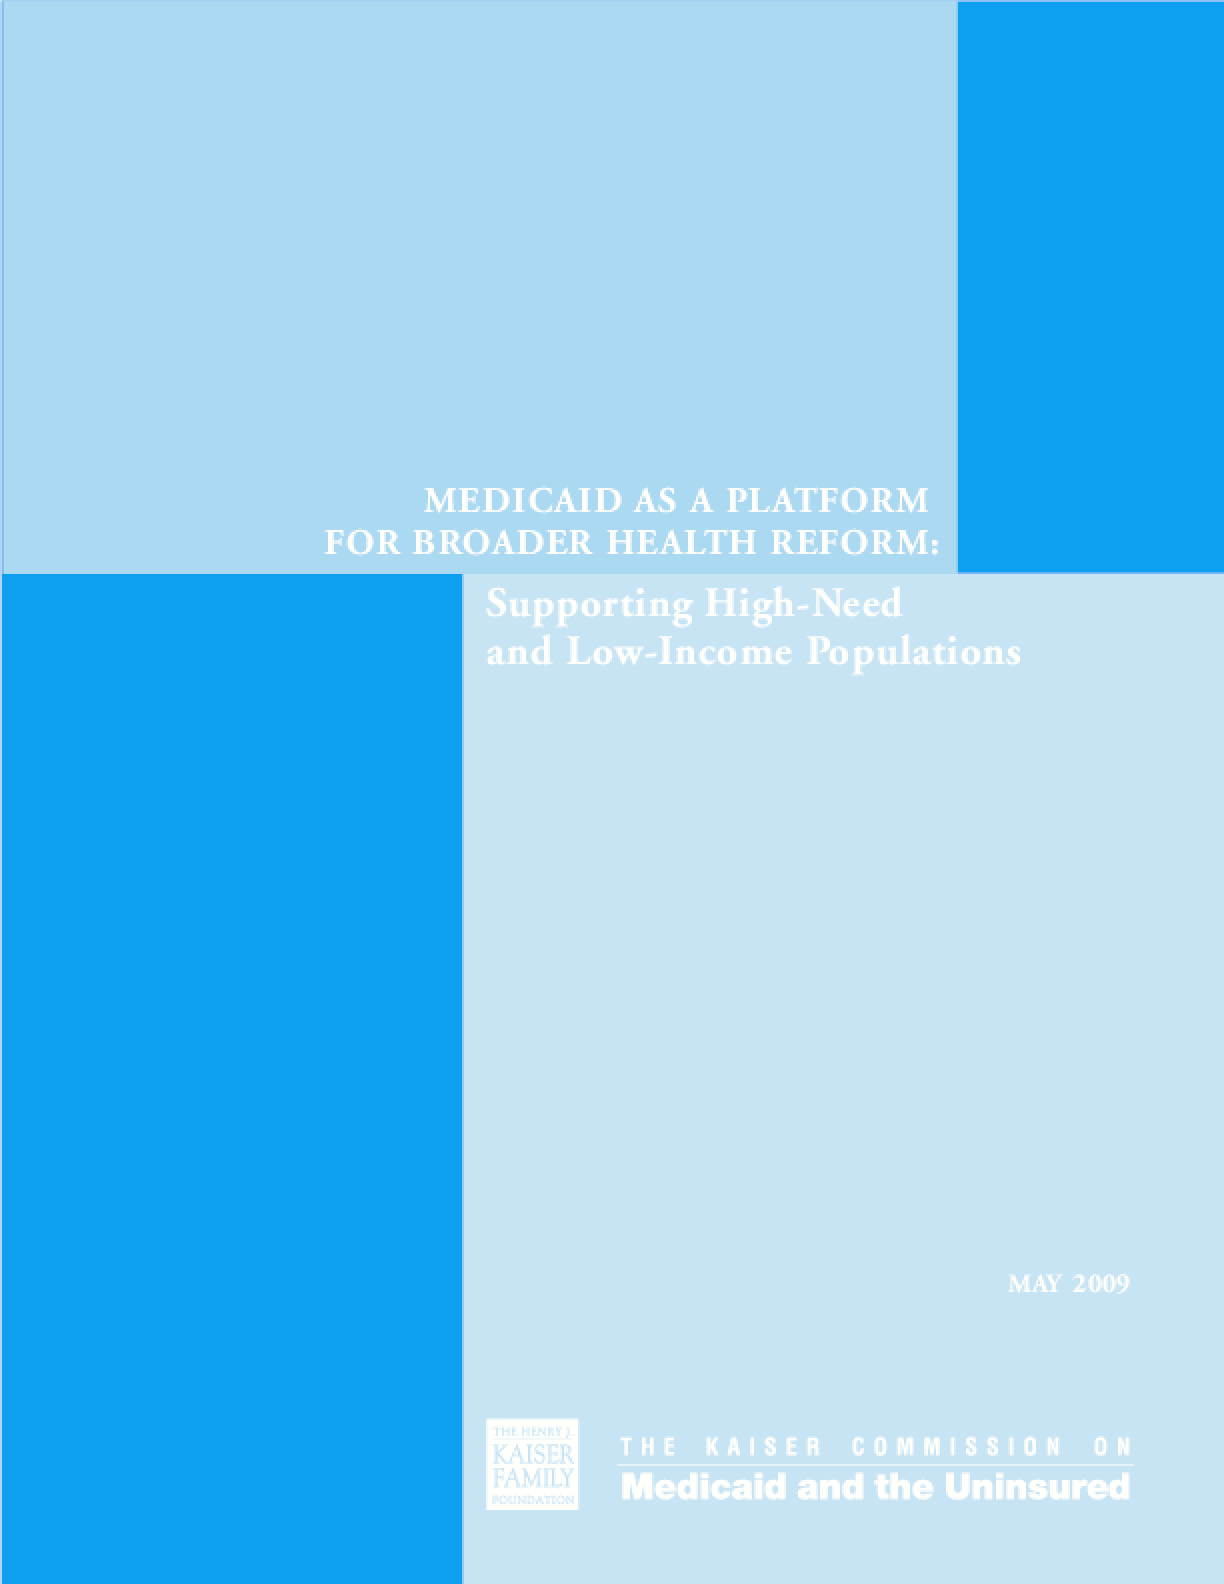 Medicaid as a Platform for Broader Health Reform: Supporting High-Need and Low-Income Populations